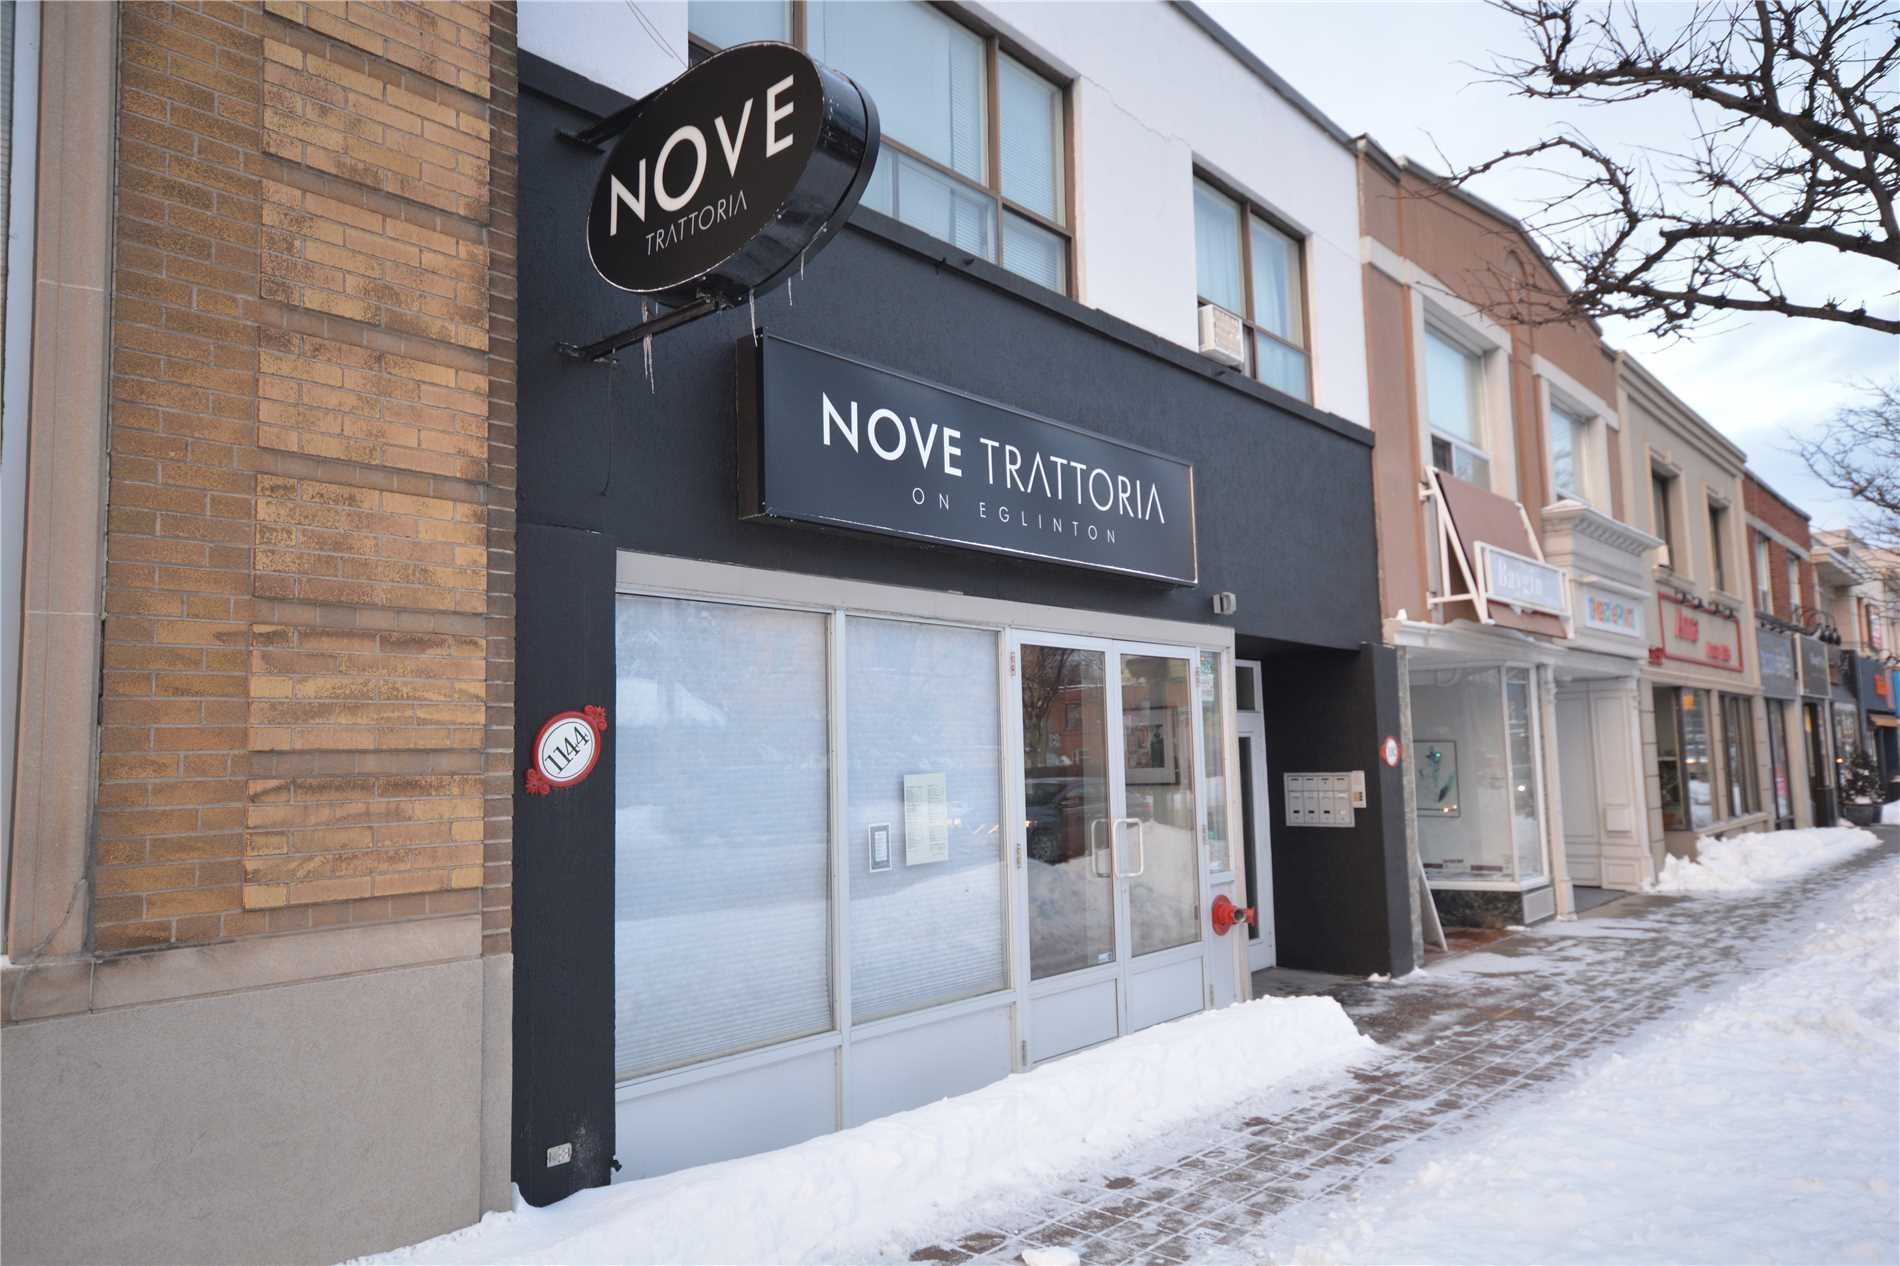 Unbelievable Opportunity-Thriving Turn Key Business In The Trendy North Forest Hill Area. Established Restaurant Since 1981 Serving Italian Cuisine With A Liquor Licence For 103. Amazing Exposure On Eglinton Ave West. Great Net Rent Plus Tmi, Utilities And Water. Please Do Not Go Direct And Do Not Speak To Employees.